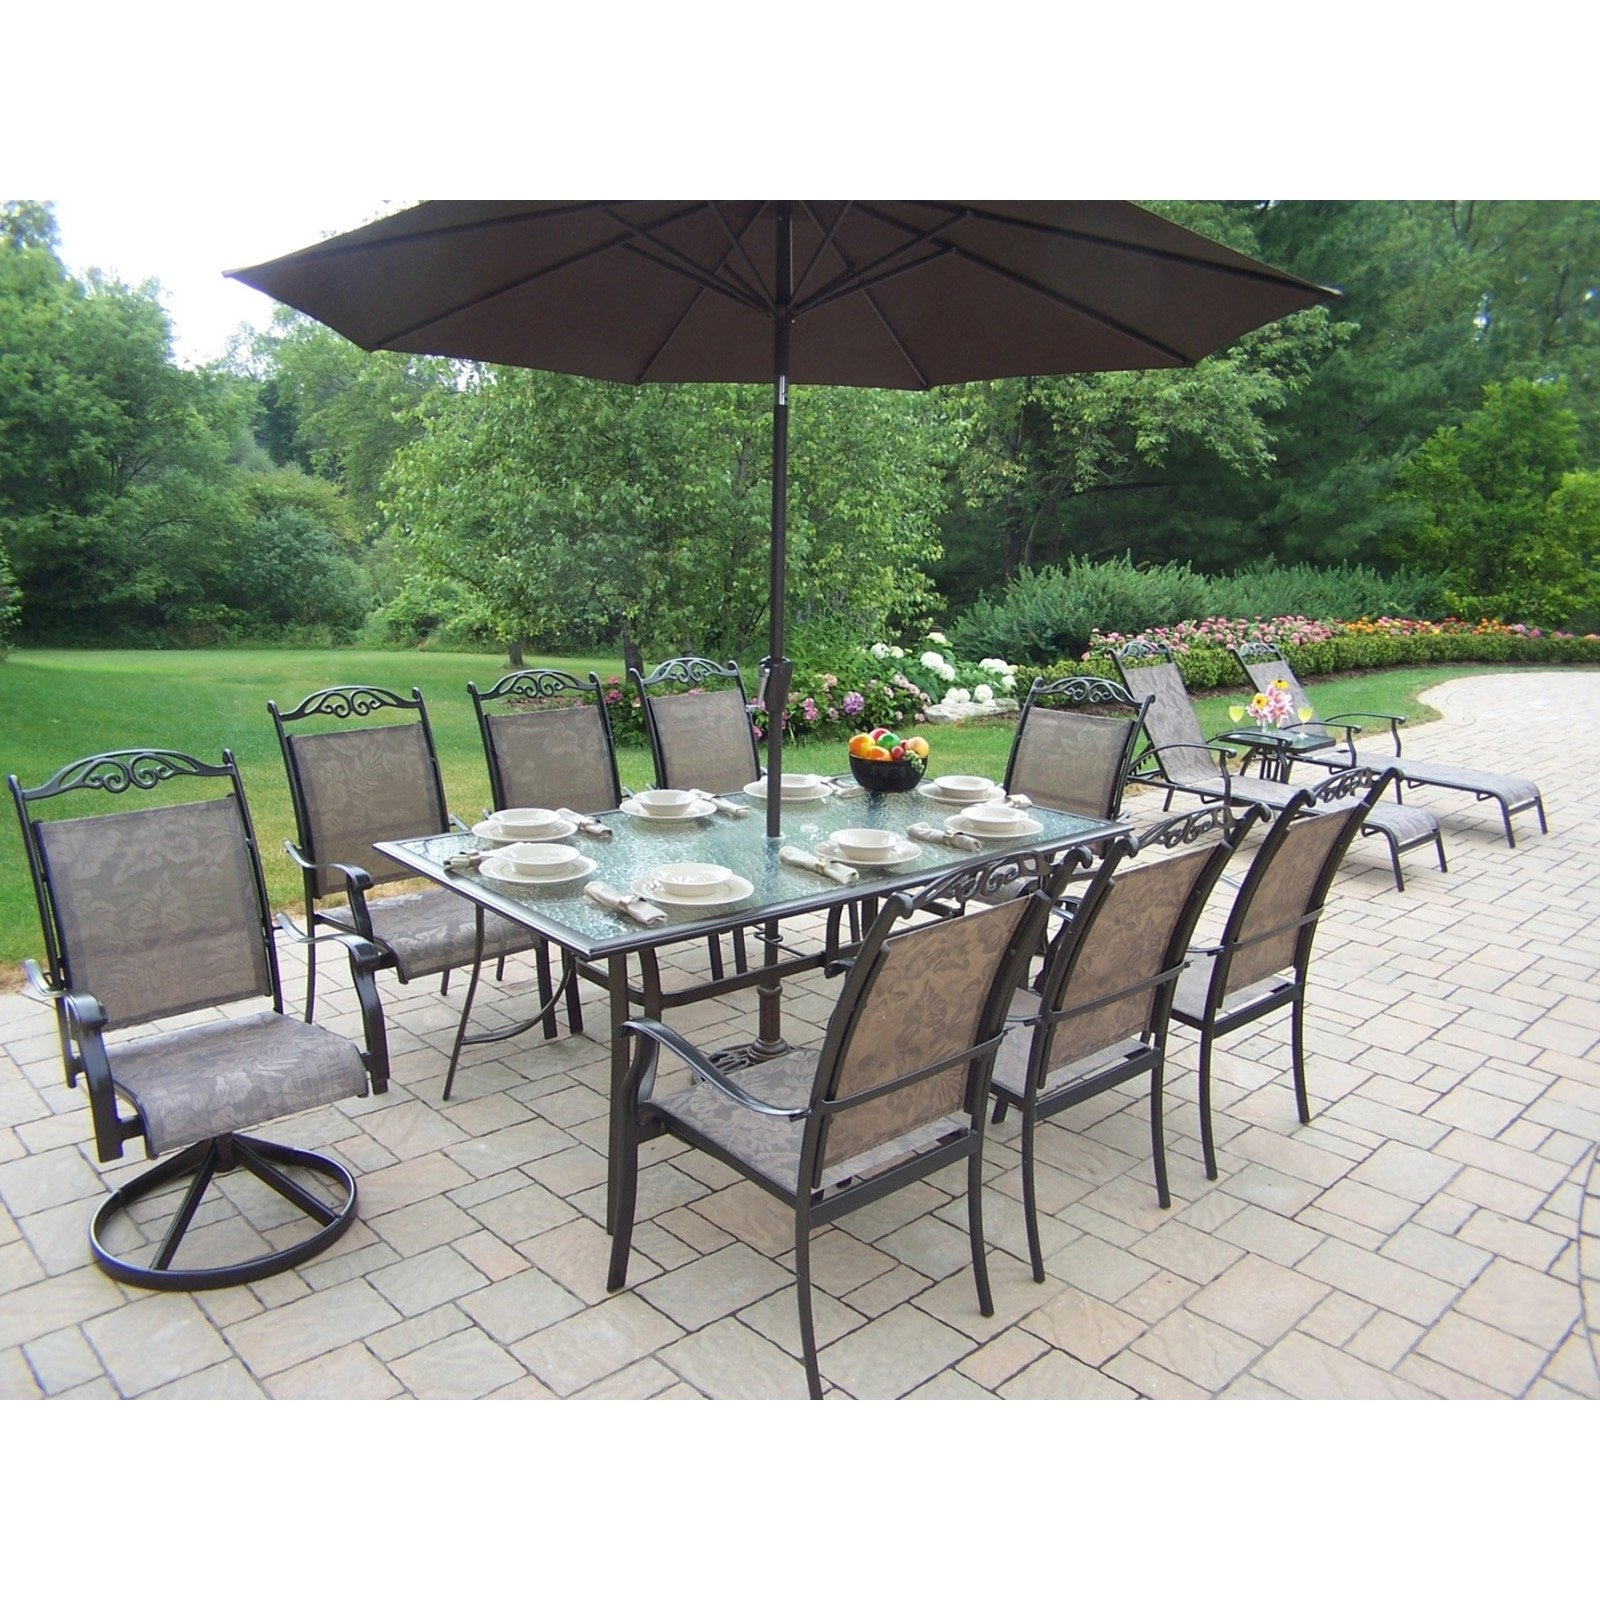 Patio Dining Sets With Umbrellas Throughout Fashionable Patio Furniture Walmart Patio Furniture Sets Patio Dining Luxury (View 12 of 20)